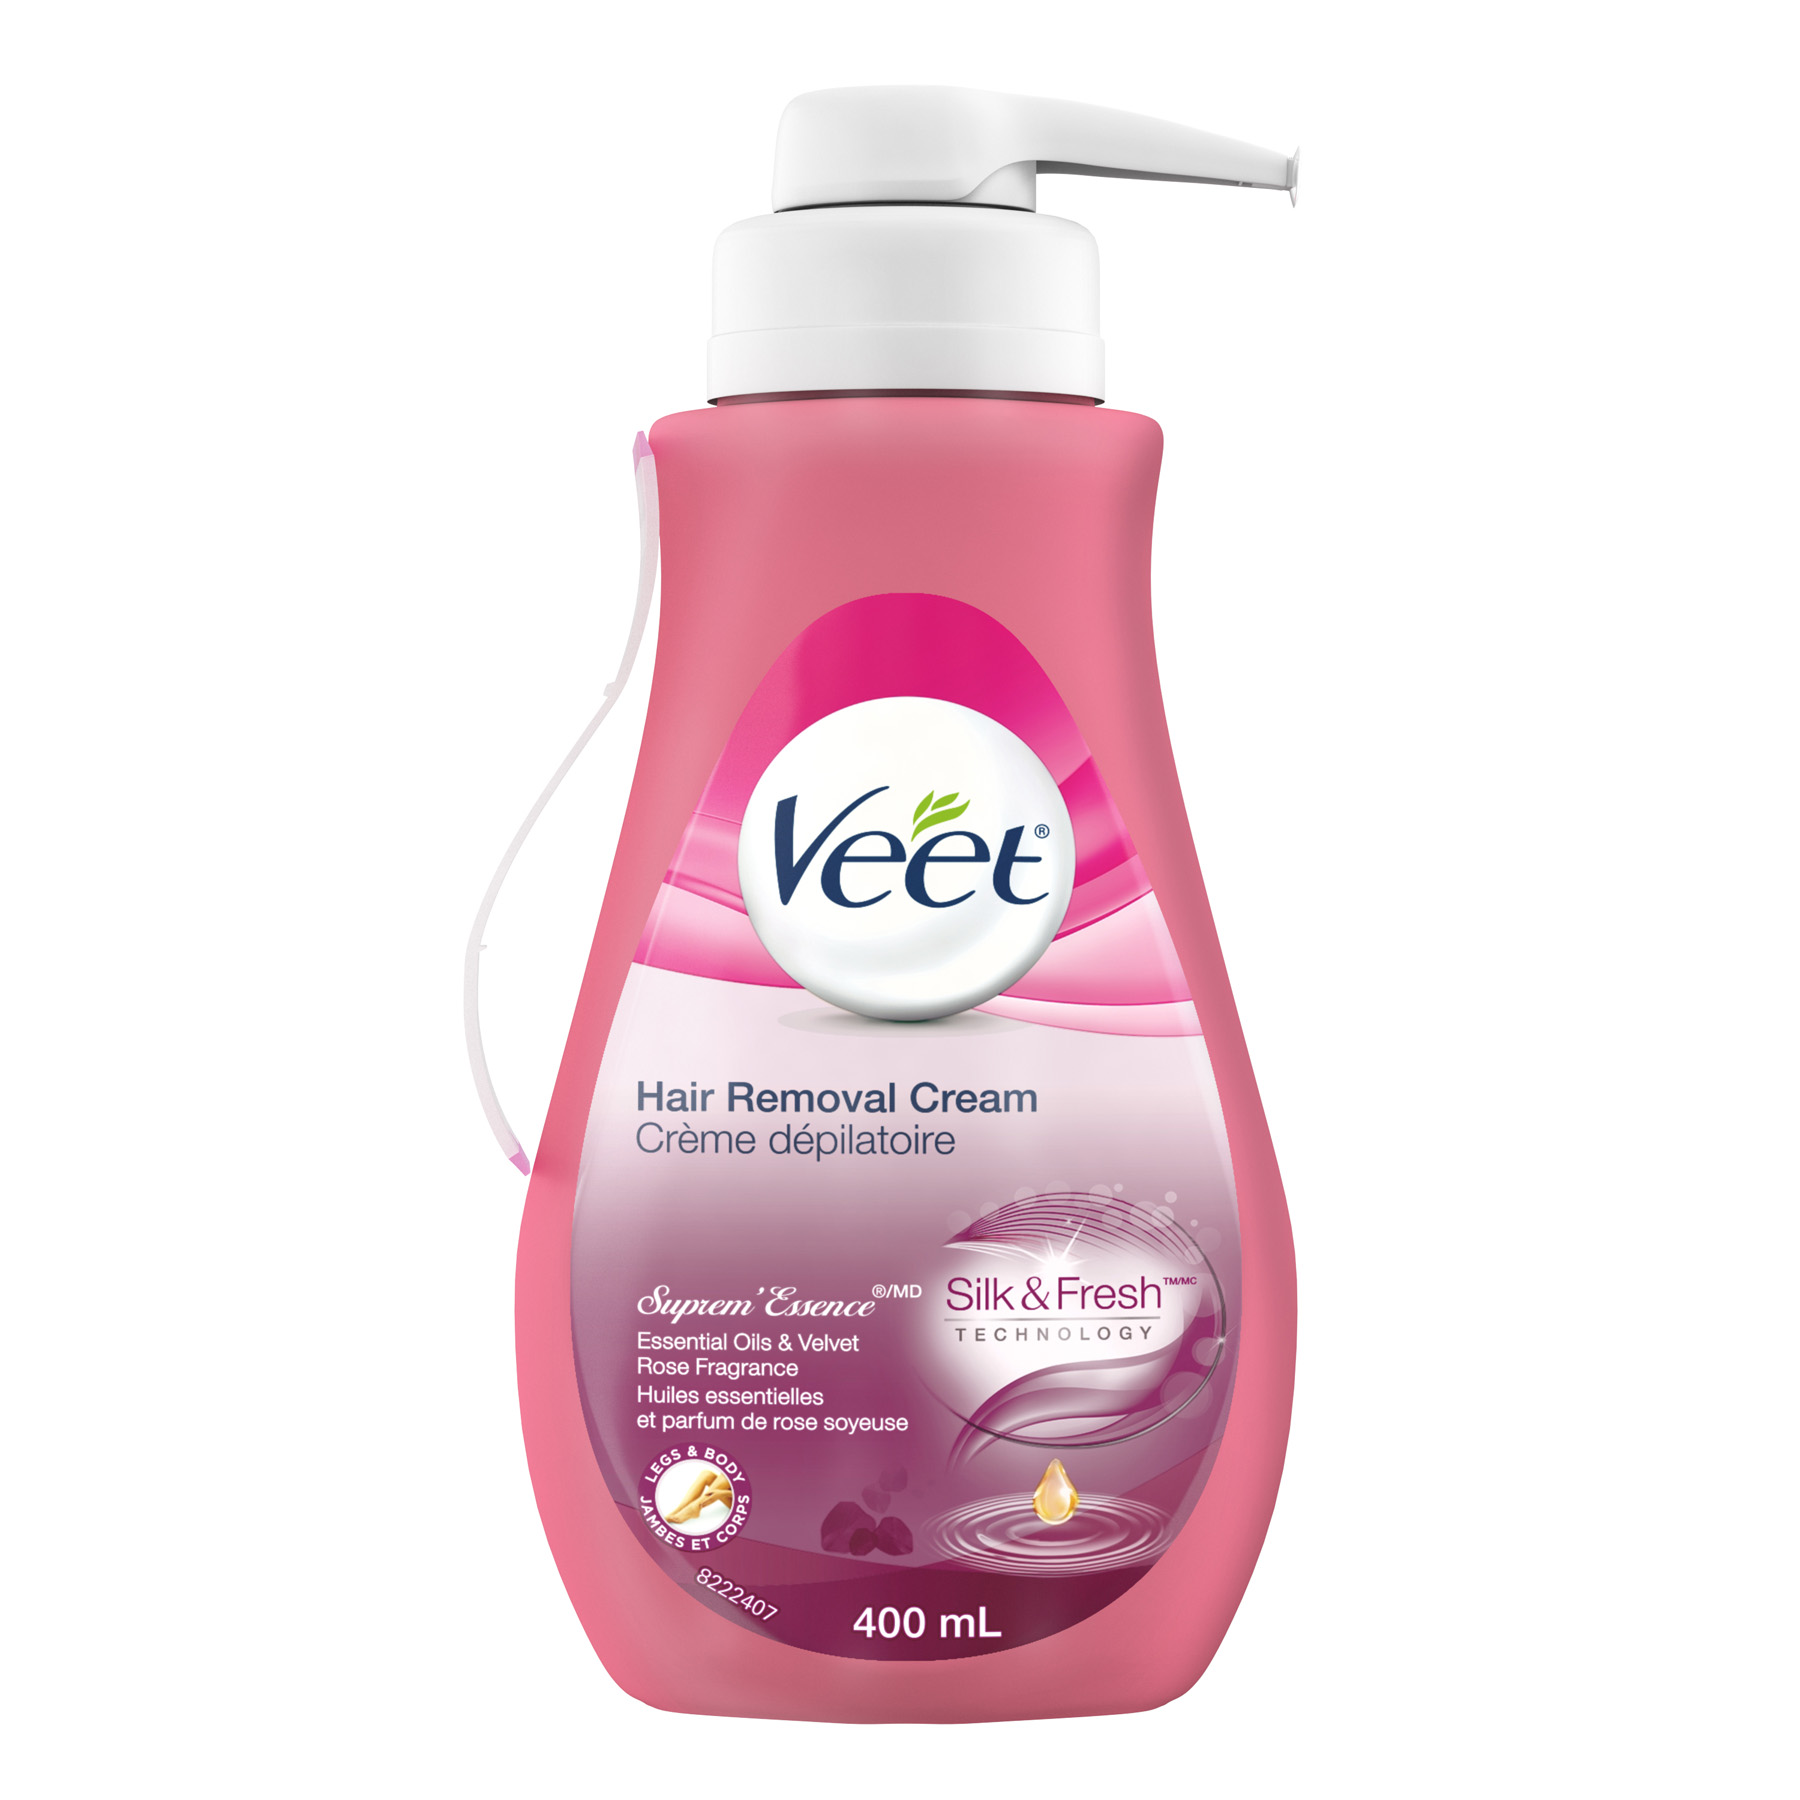 VEET® SUPREM'ESSENSE Hair Removal Cream Silk & Fresh™